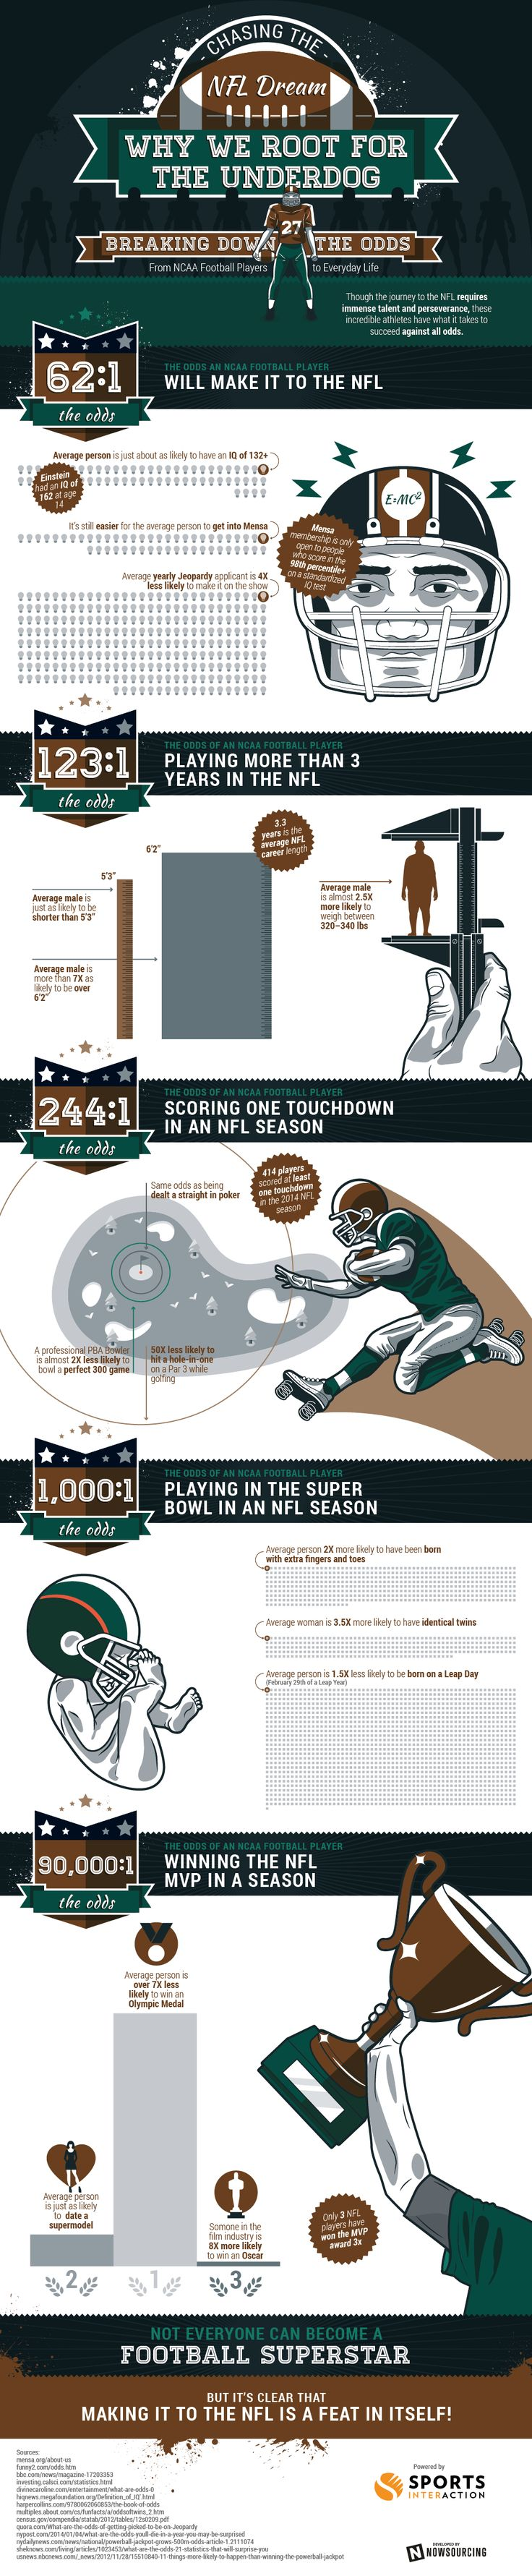 Chasing the NFL Dream #infographic #NFL #Sports